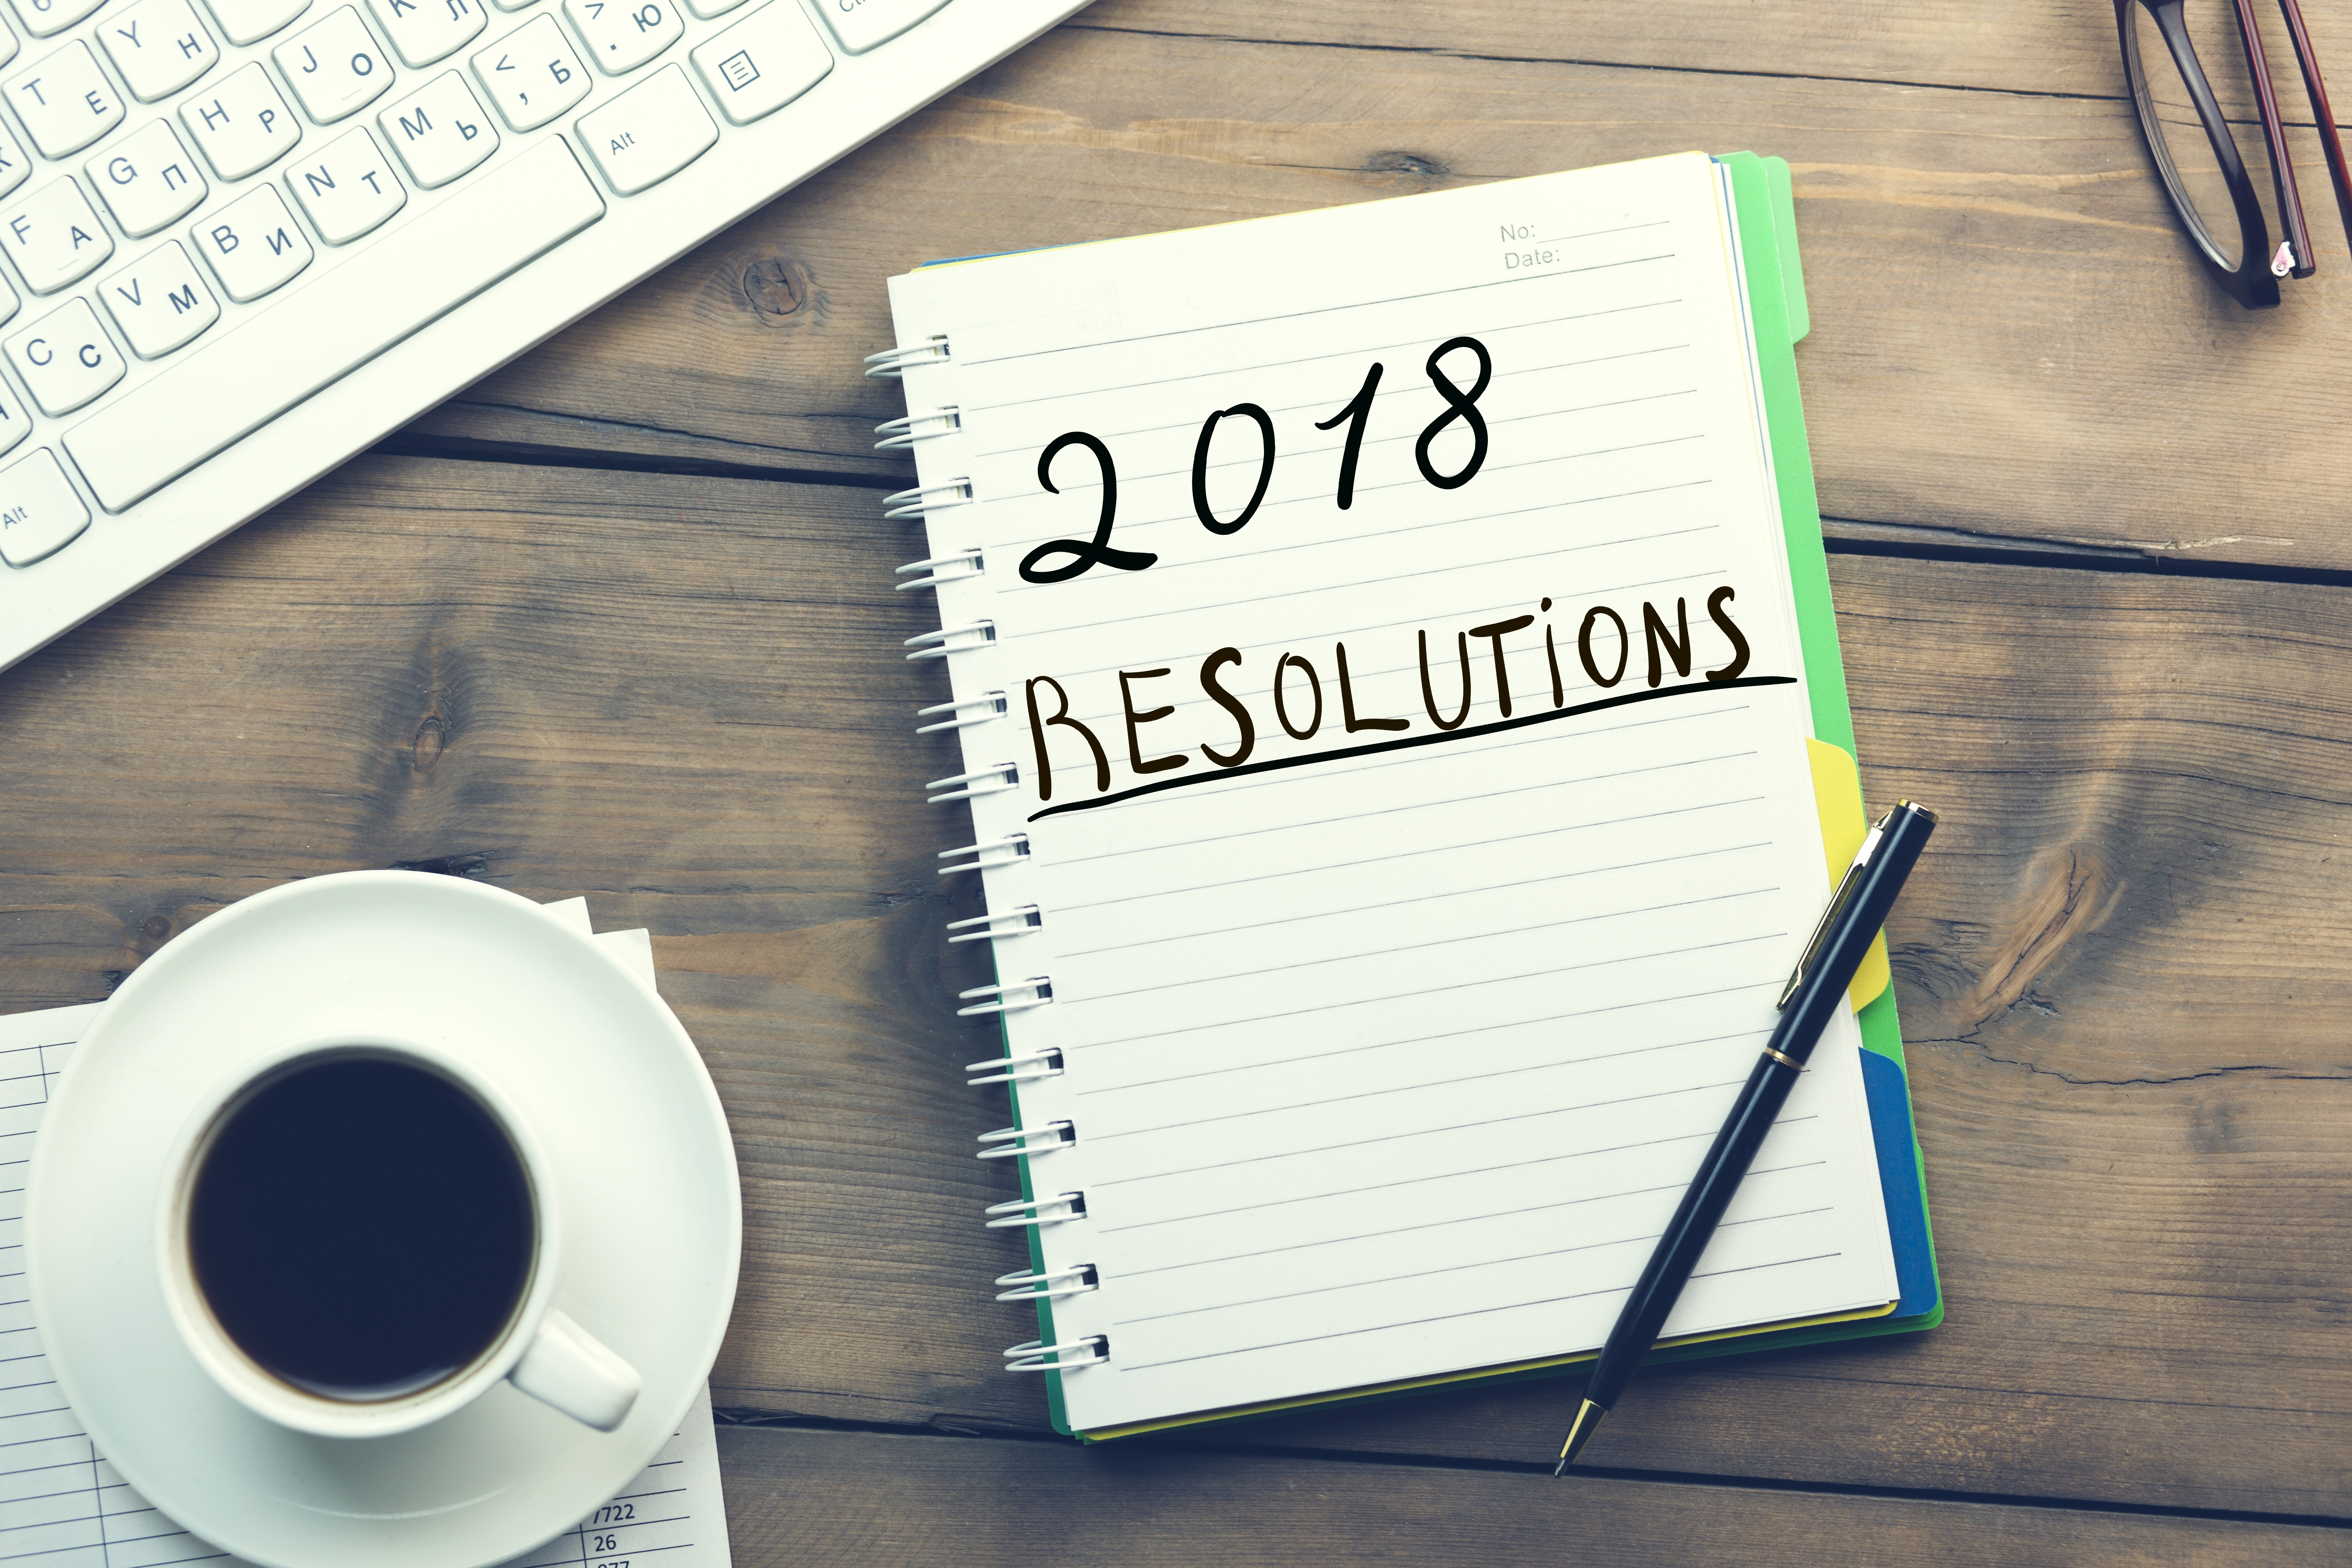 """Admissions marketer """"2018 resolutions"""" on a notepad, thinking about how to reach more of the right prospective students."""